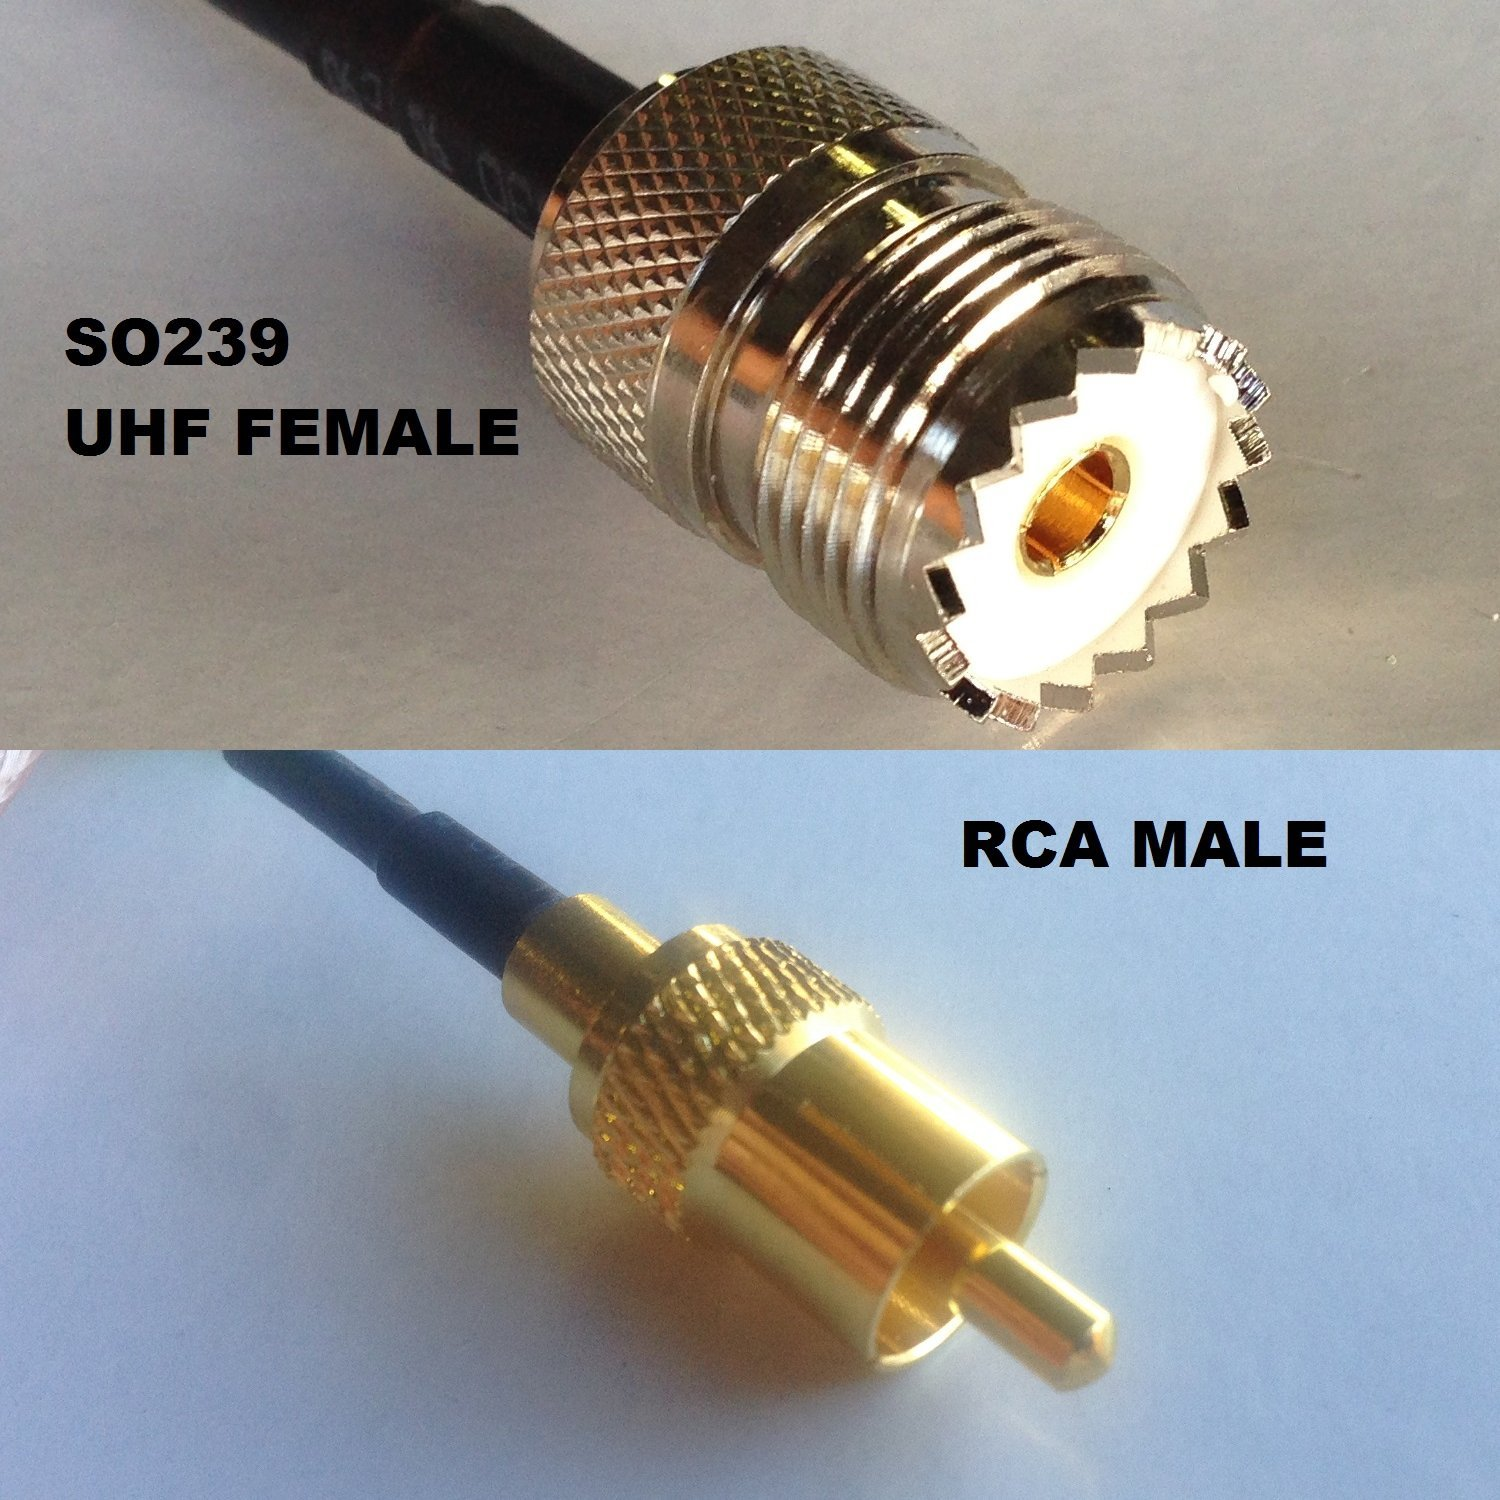 3 feet RG58 PL259 UHF MALE to RCA Male Coaxial cable High Quality ships from USA